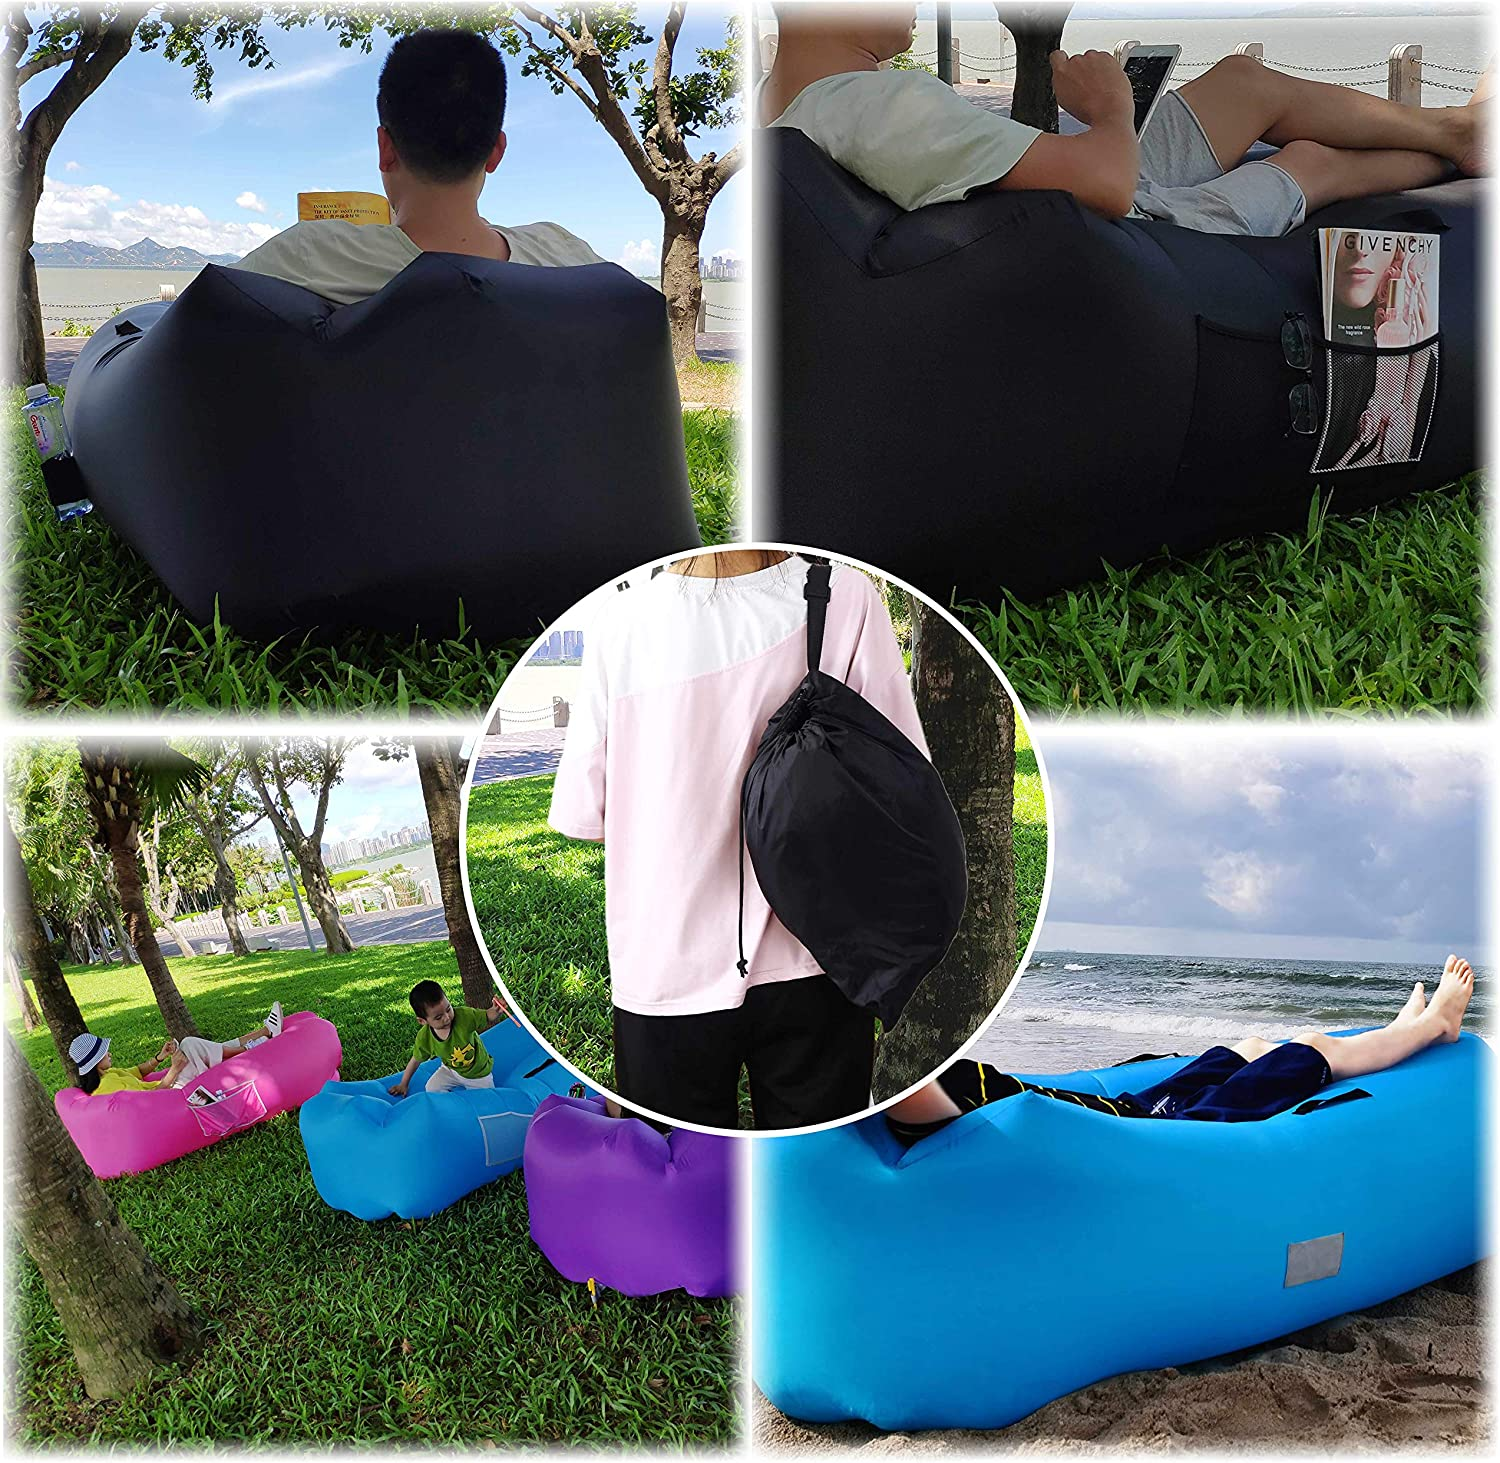 Honsky Inflatable Couch Lounger with Pillow Blow up Chair Hammock for Outdoor Camping Beach Blue Cool Waterproof Anti-Air Leaking Air Sofa